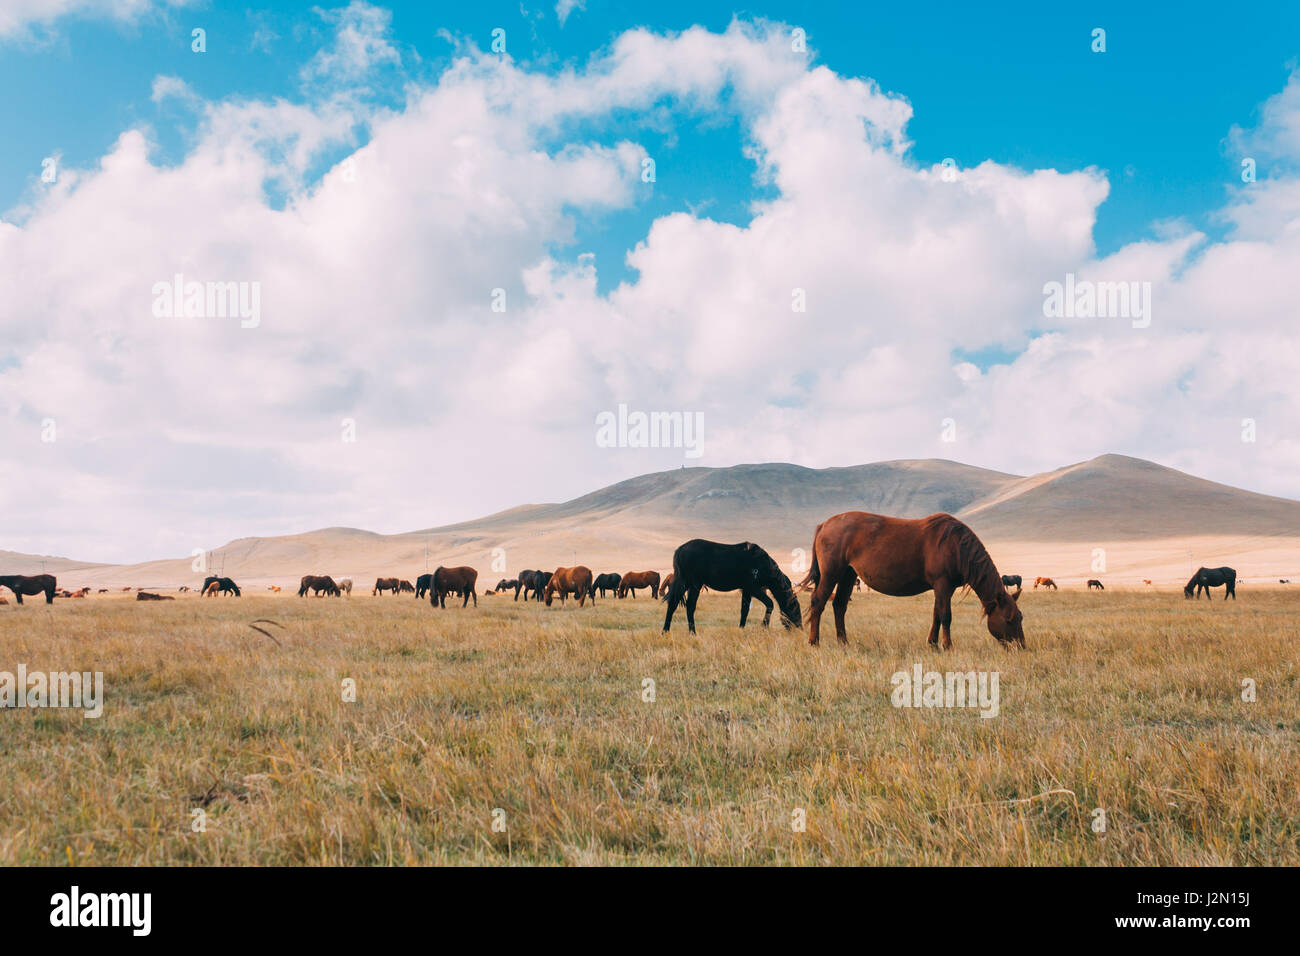 A herd of hores feeding in the grassland against hills and mountains, inner mongolia,China - Stock Image